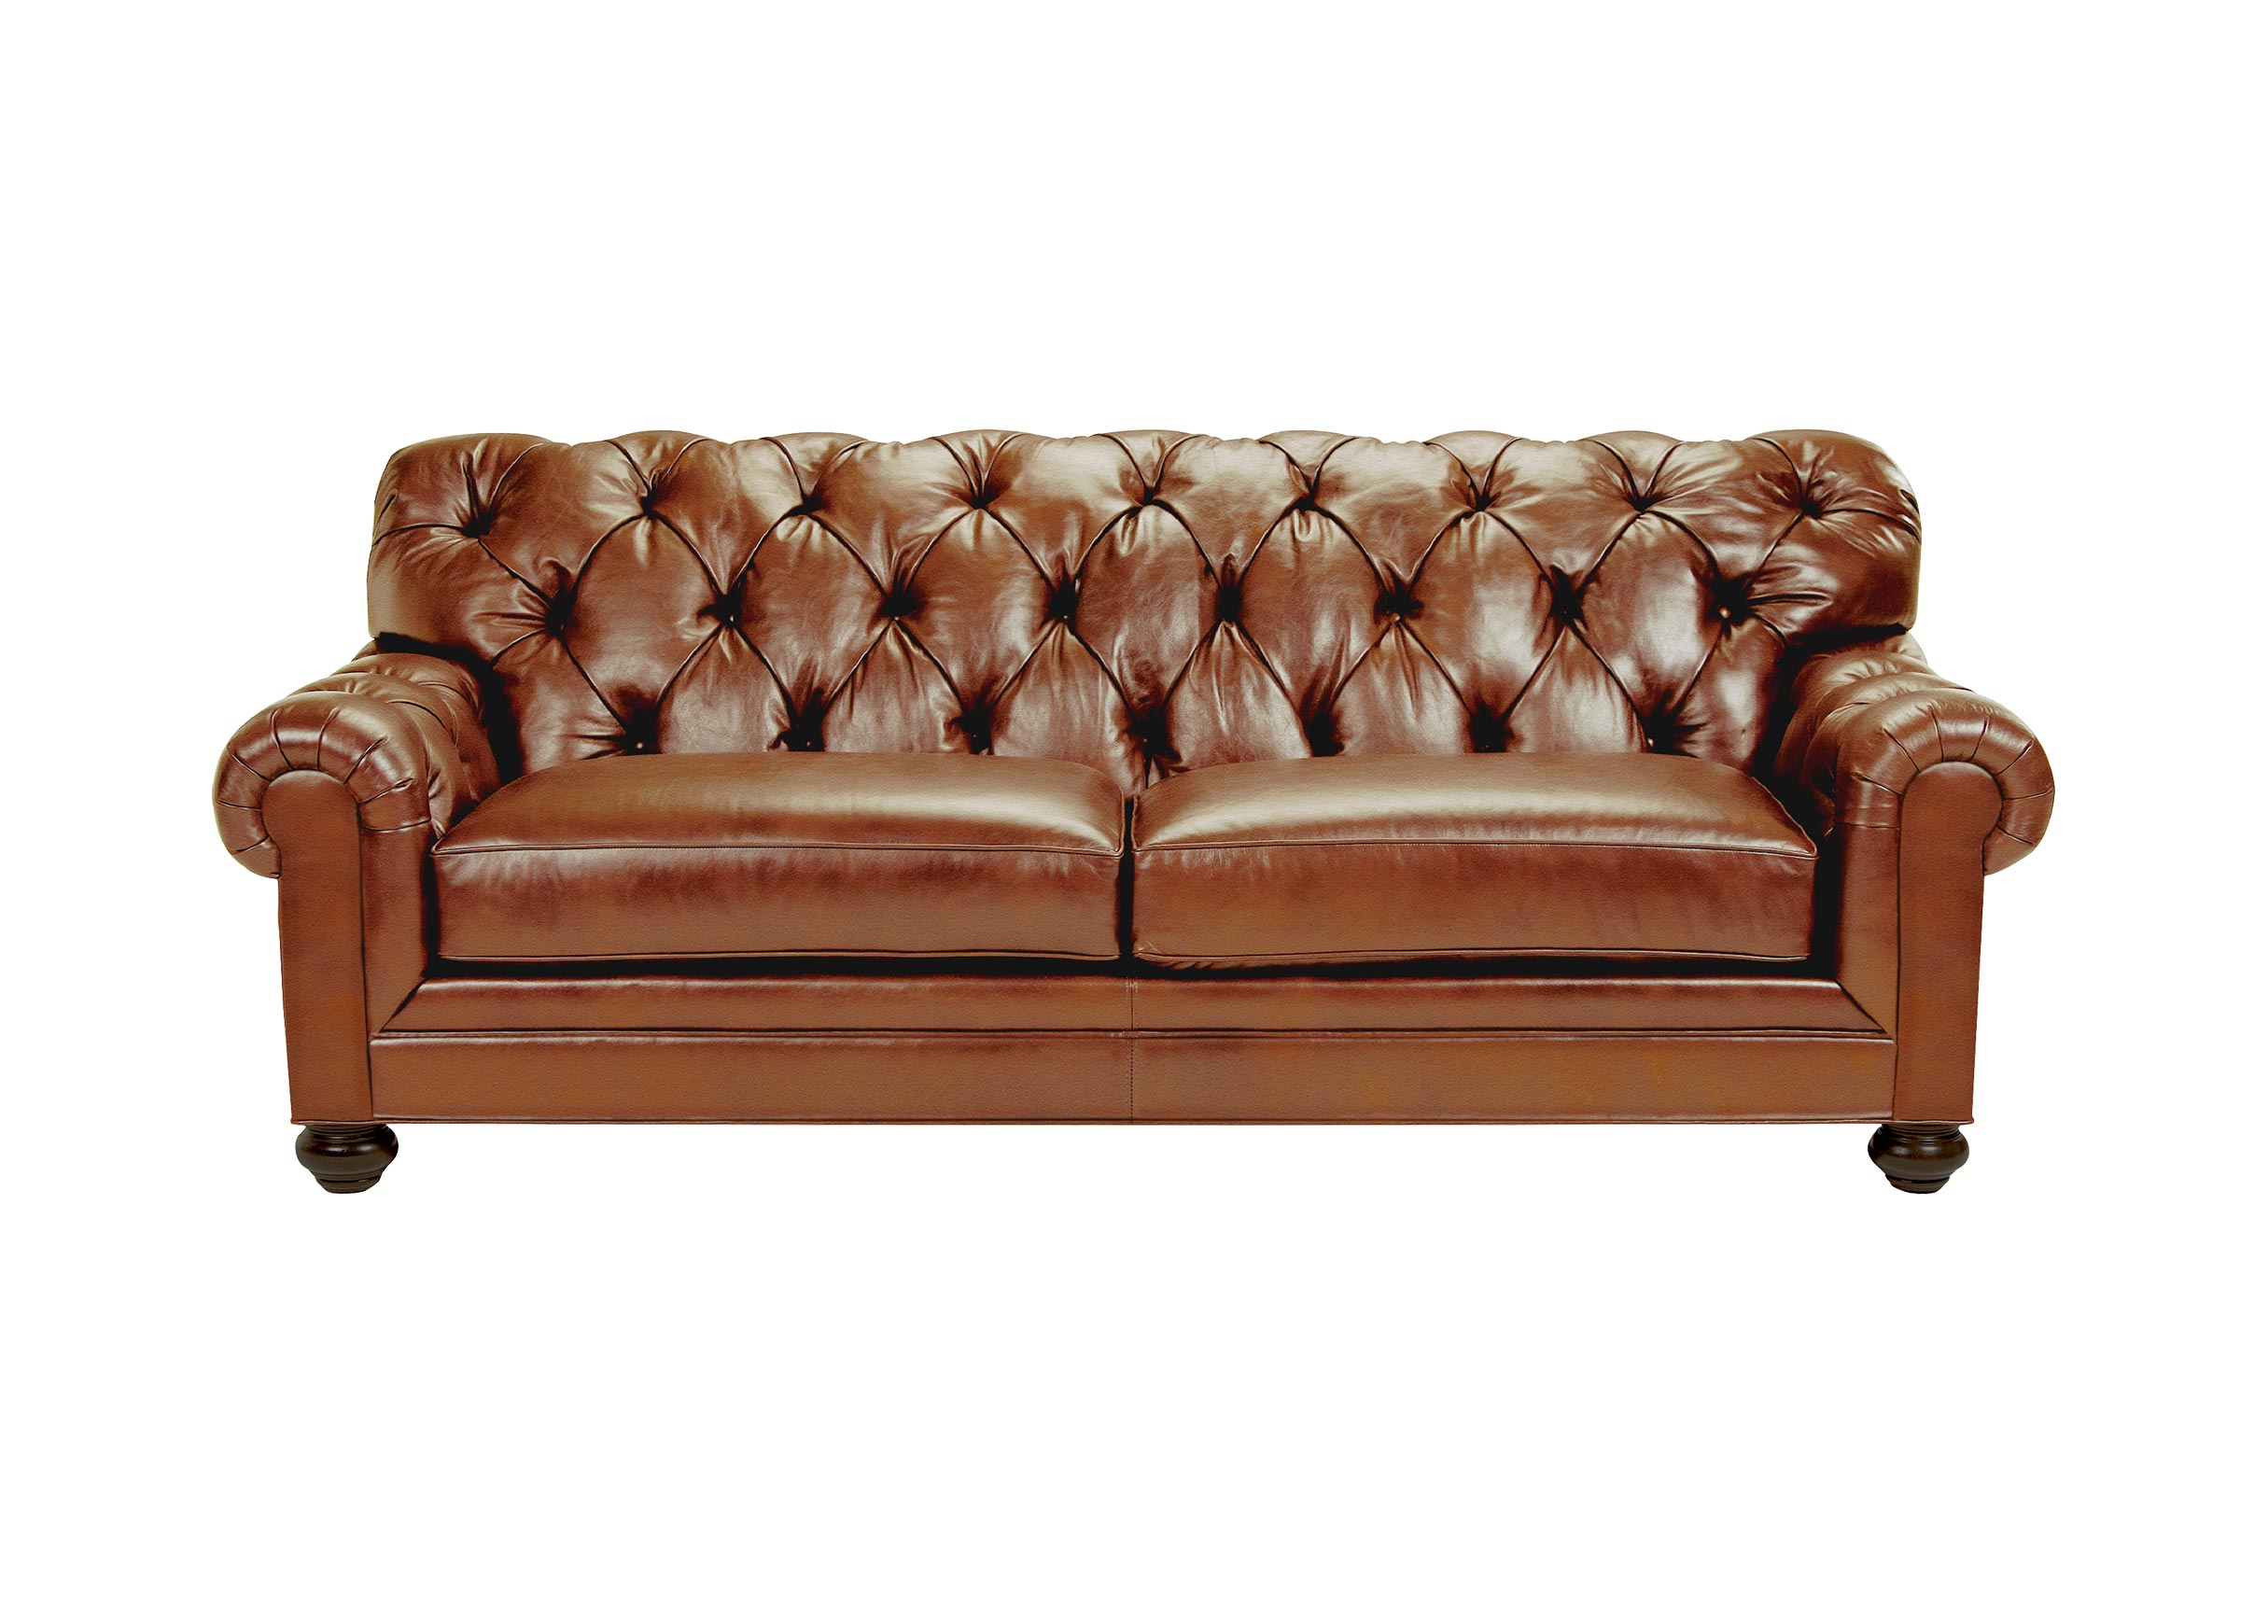 Chadwick Grand Leather Sofa Maxwell Parquet